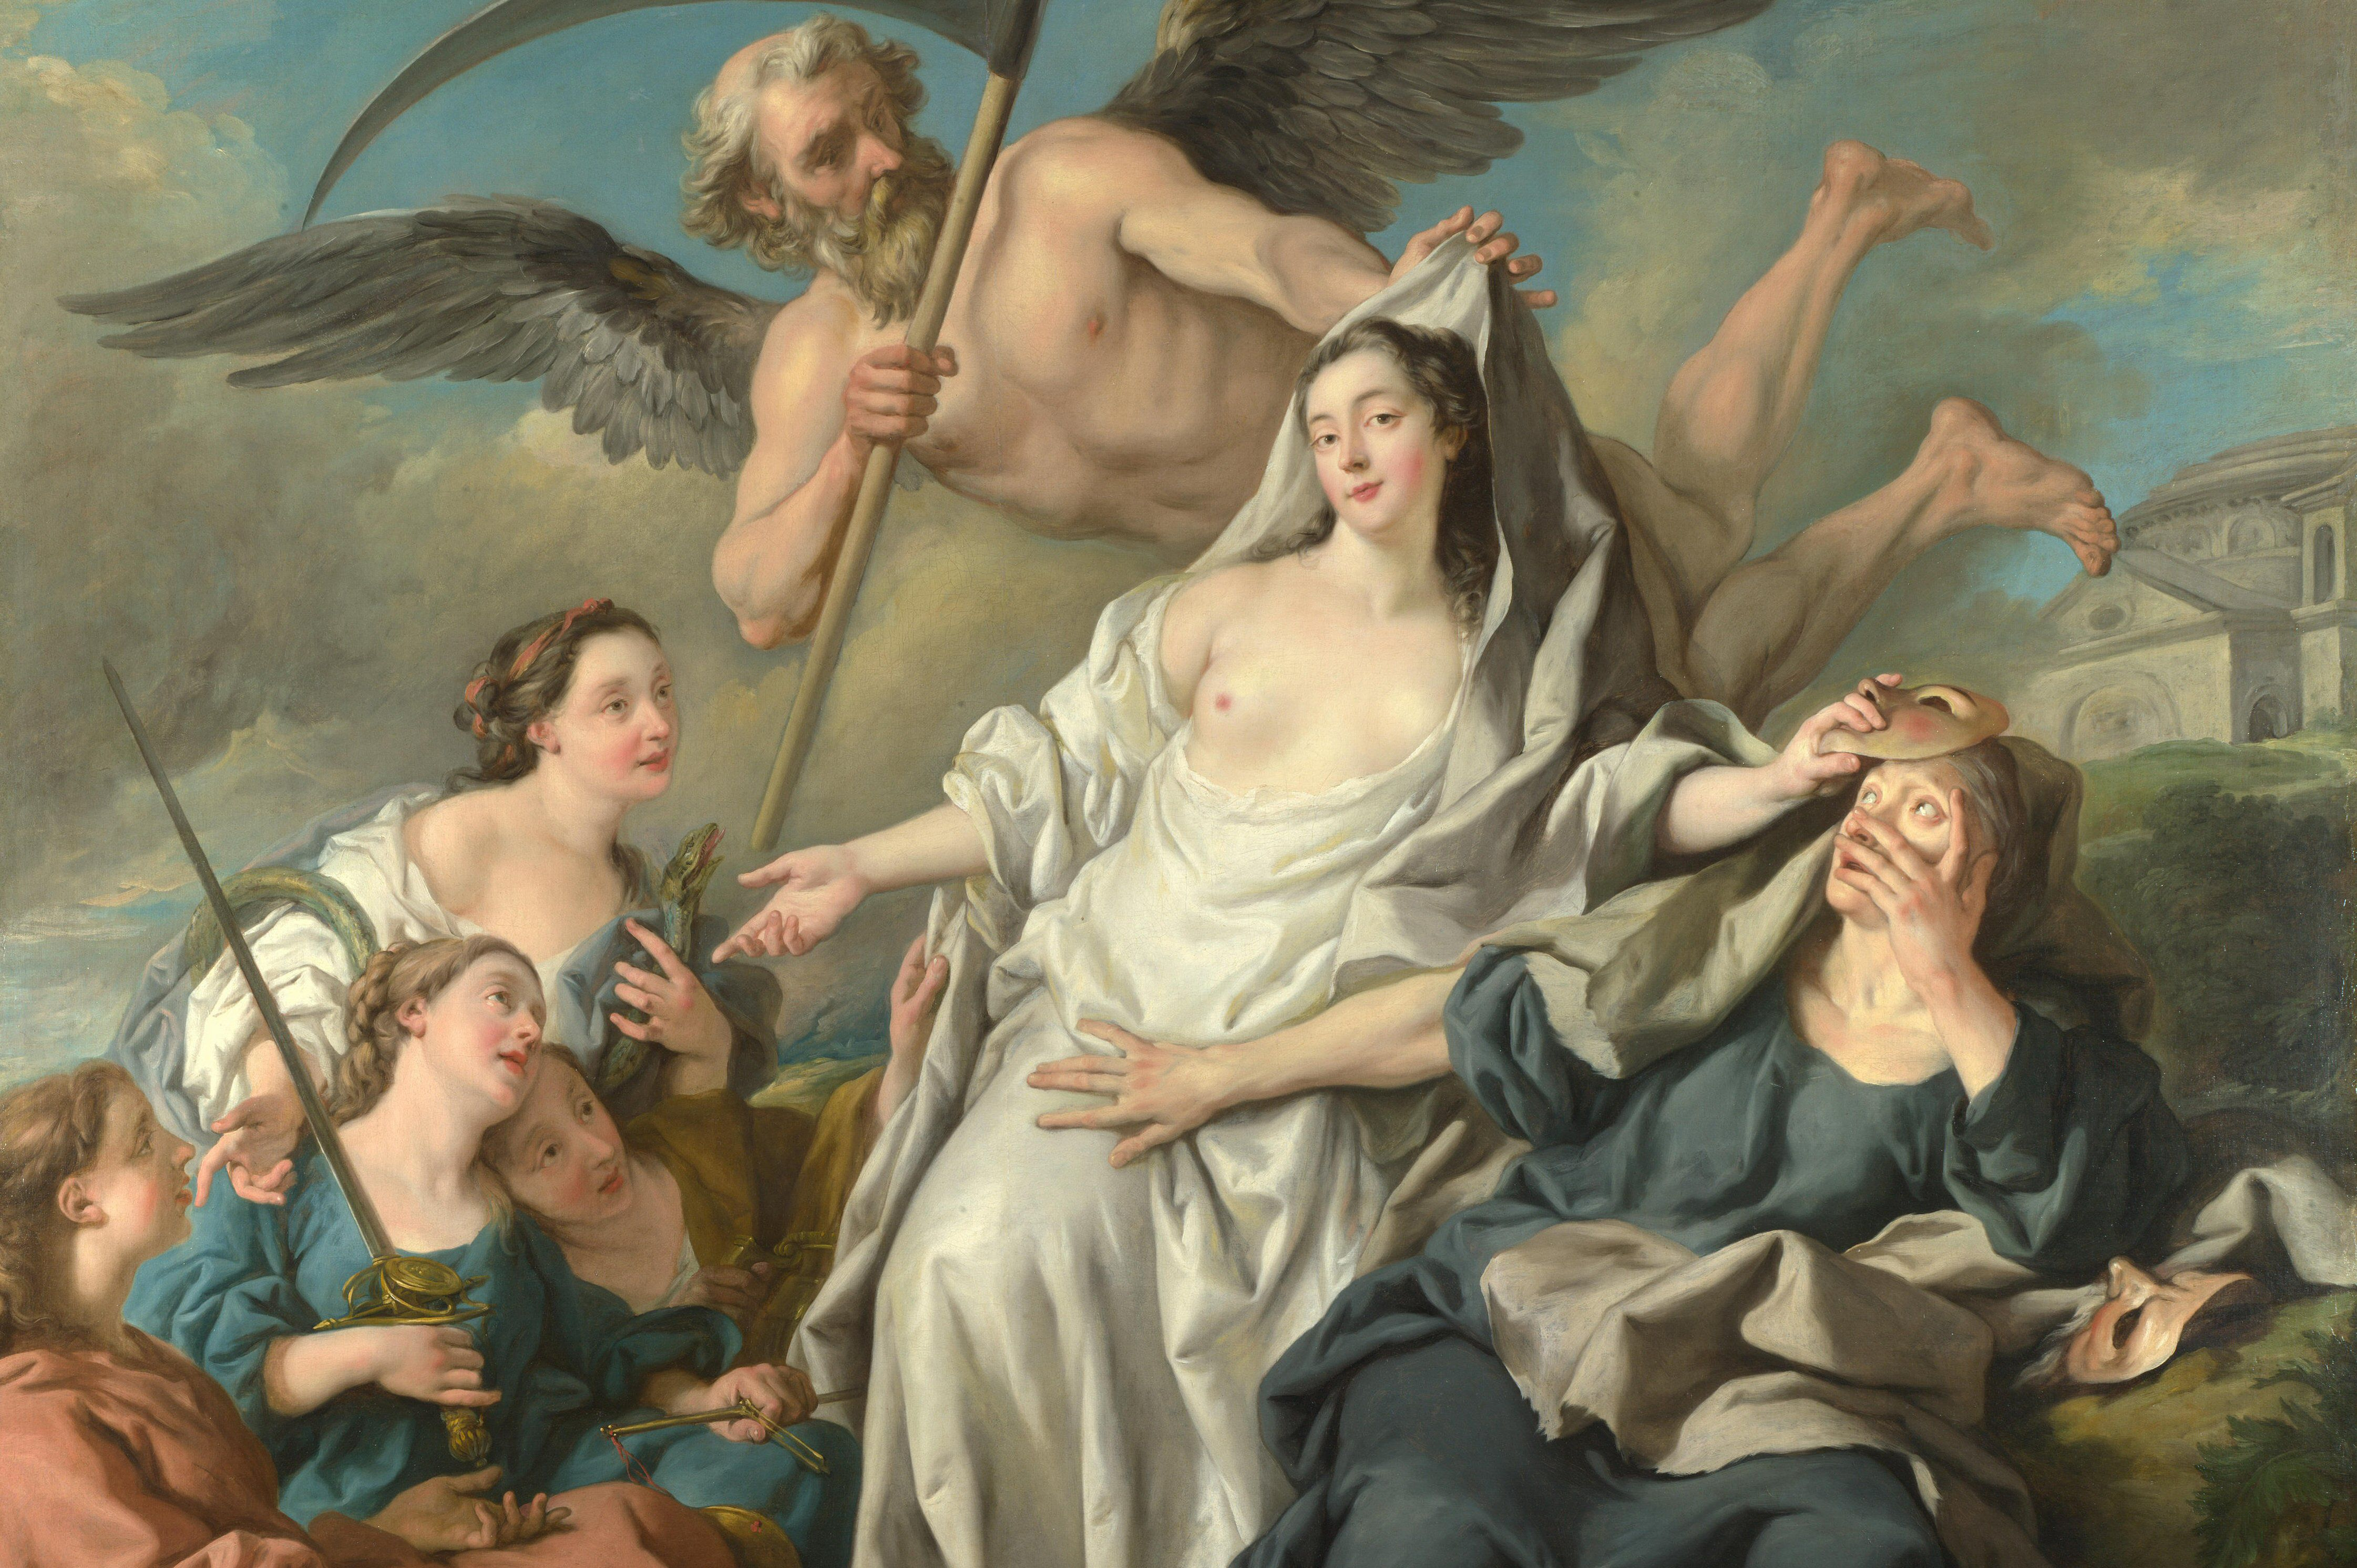 Winged man pulling a robe from a beautiful woman sitting between a masked woman and 4 adoring women of faith